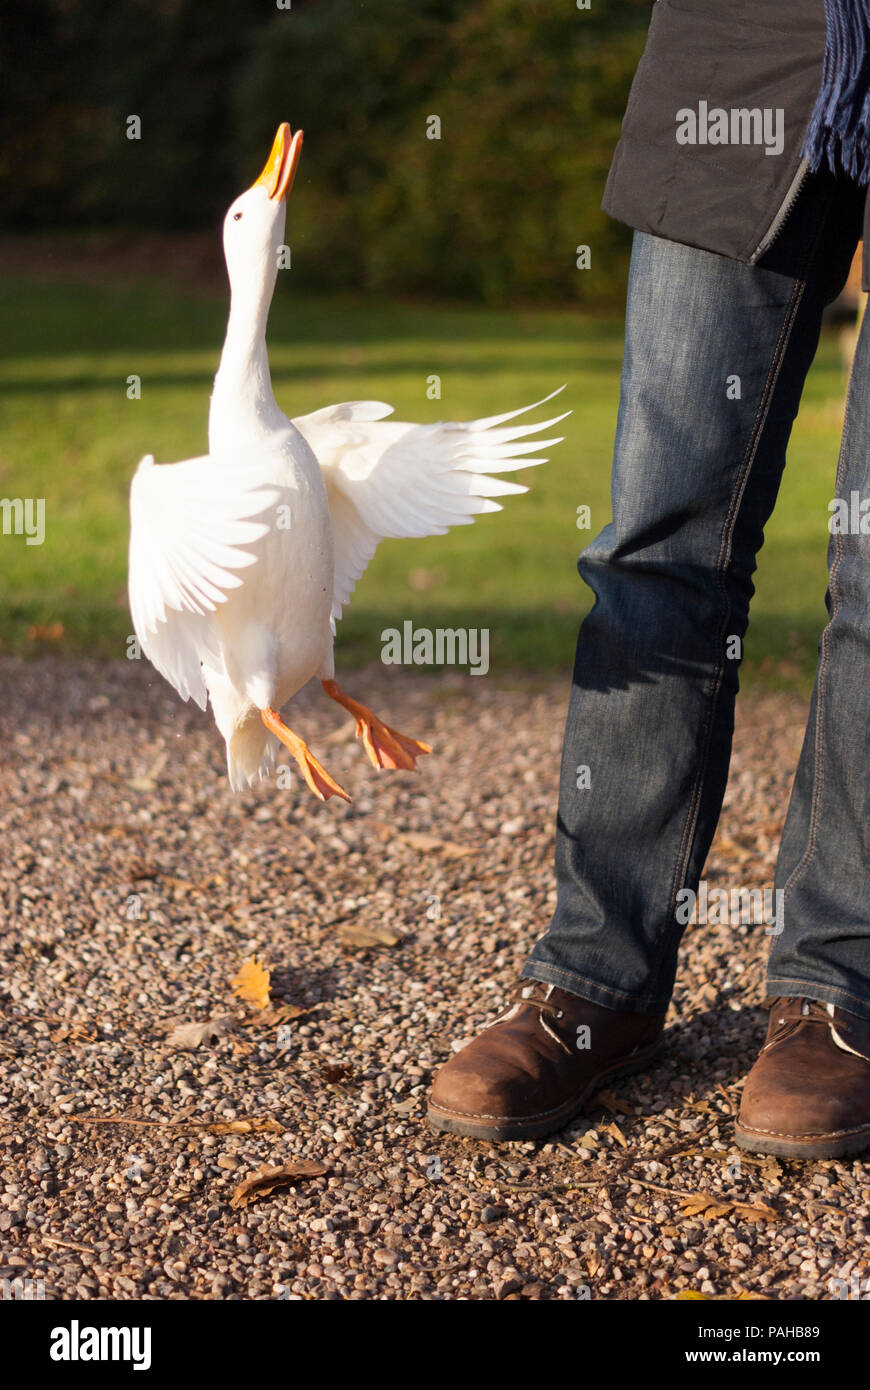 A white Pekin duck, Anas platyrhynchos, that wouldn't leave a tourist alone and kept flying up to her hand looking for bread! Near Warwick, England - Stock Image